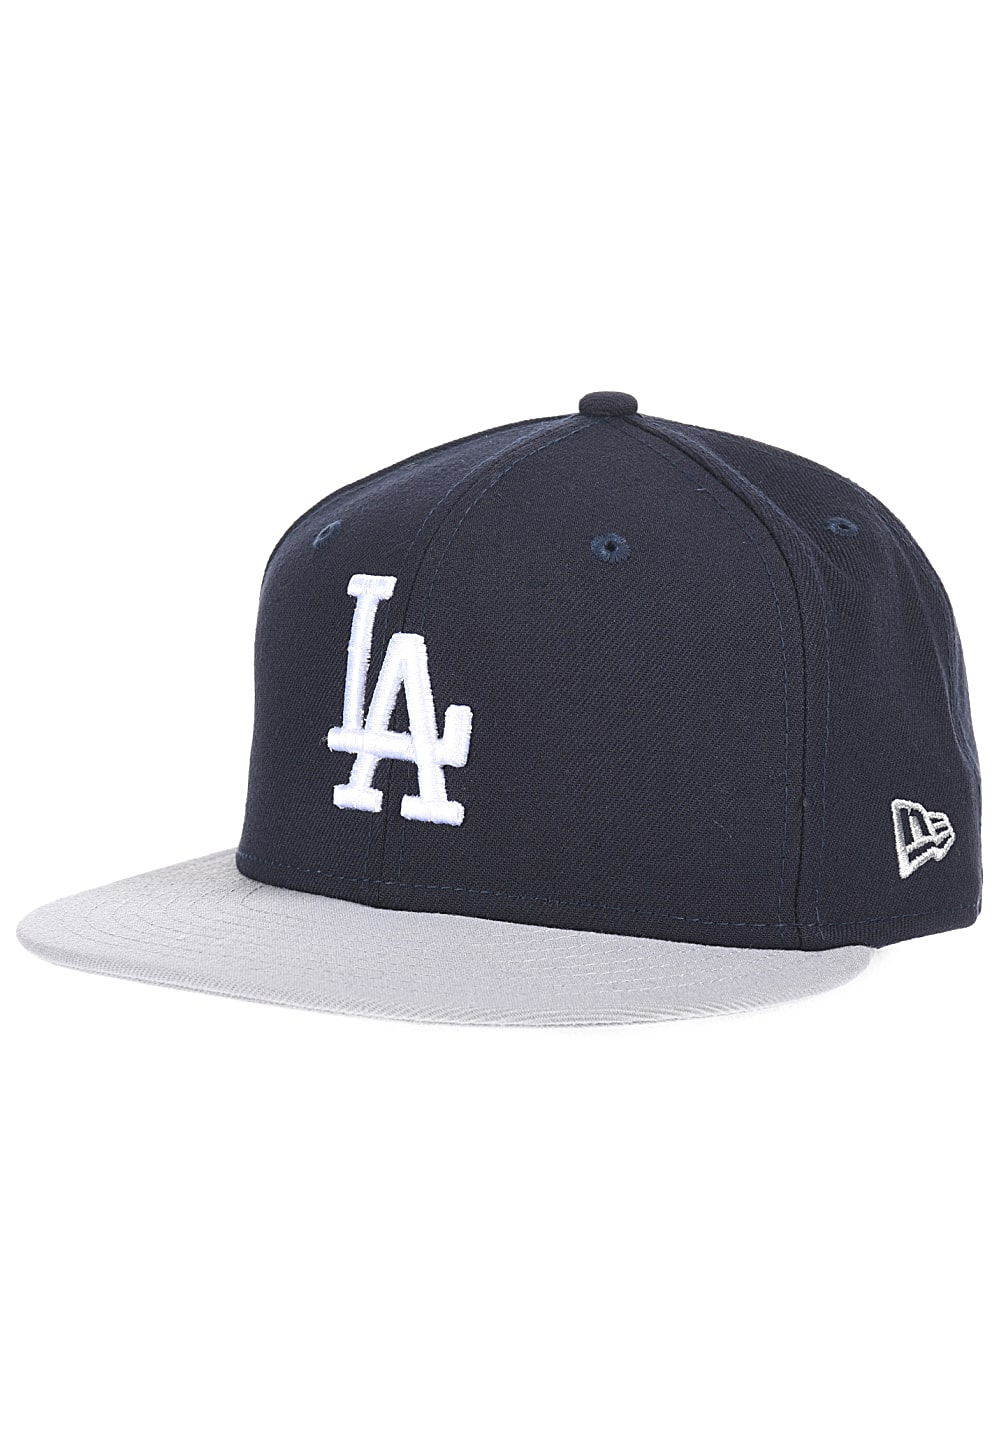 NEW Era Team Los Angeles Dodgers Otc Snapback Cap - Blau